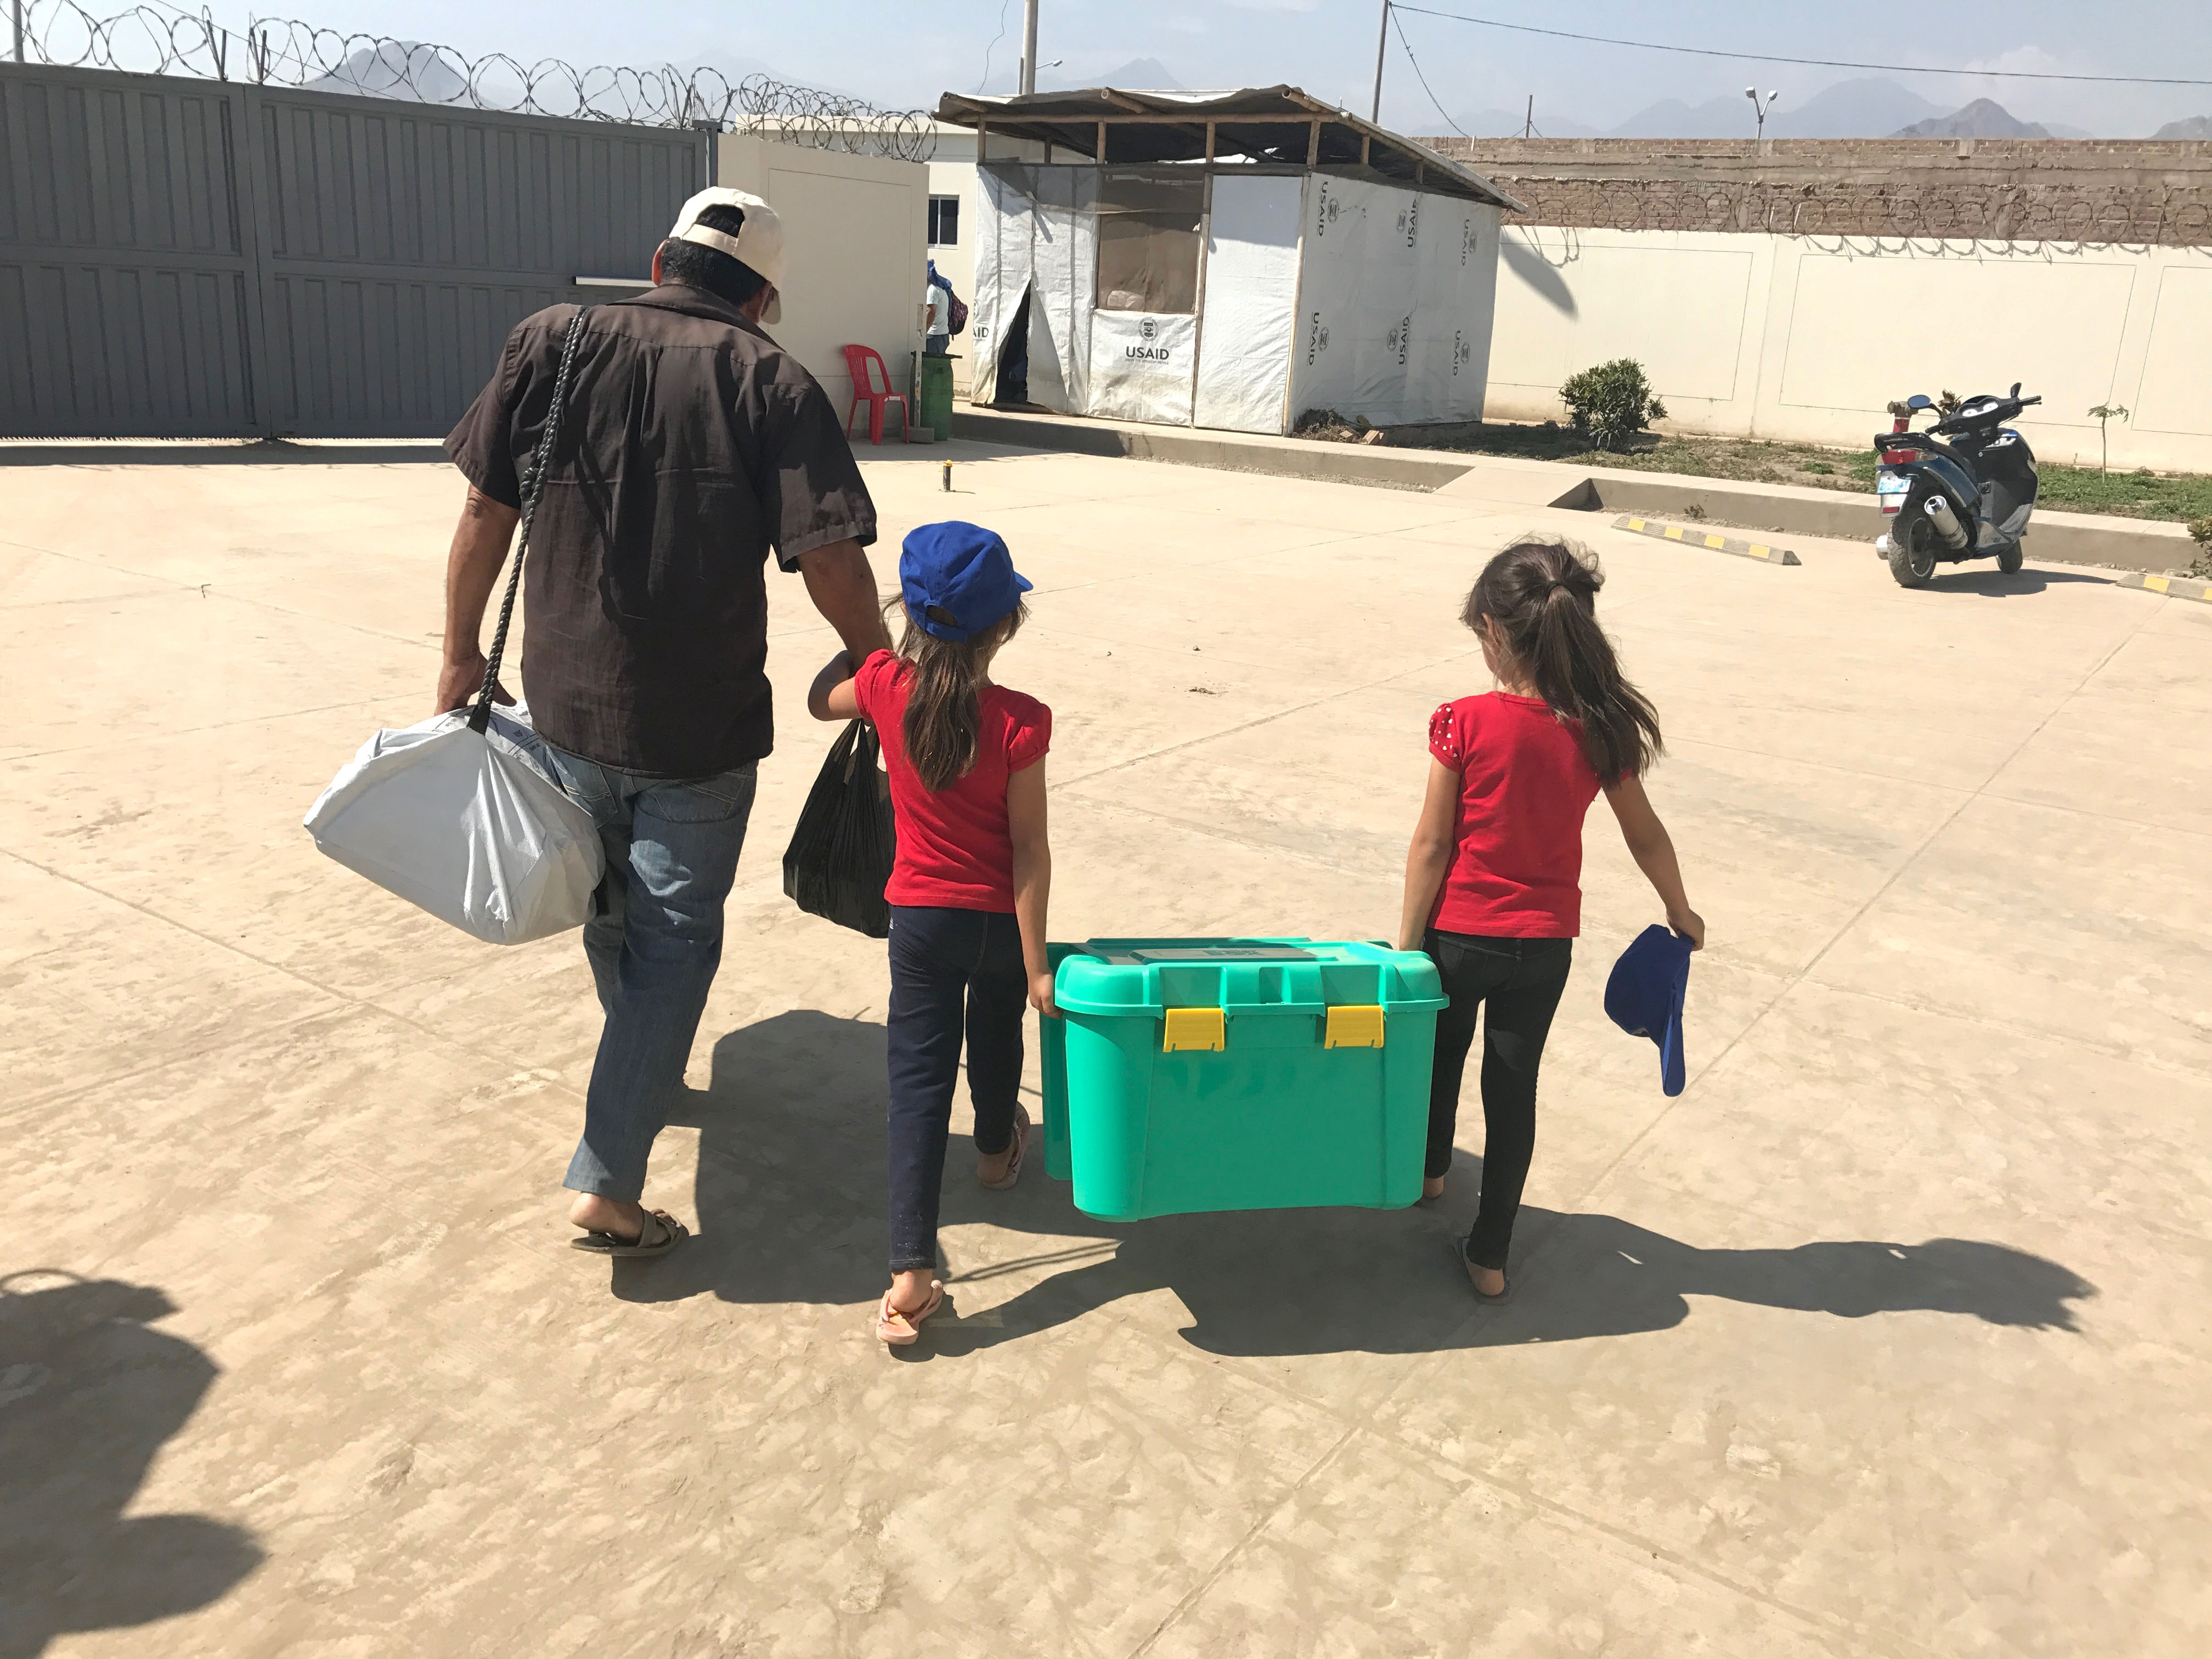 Carrying a shelterkit across the camp grounds